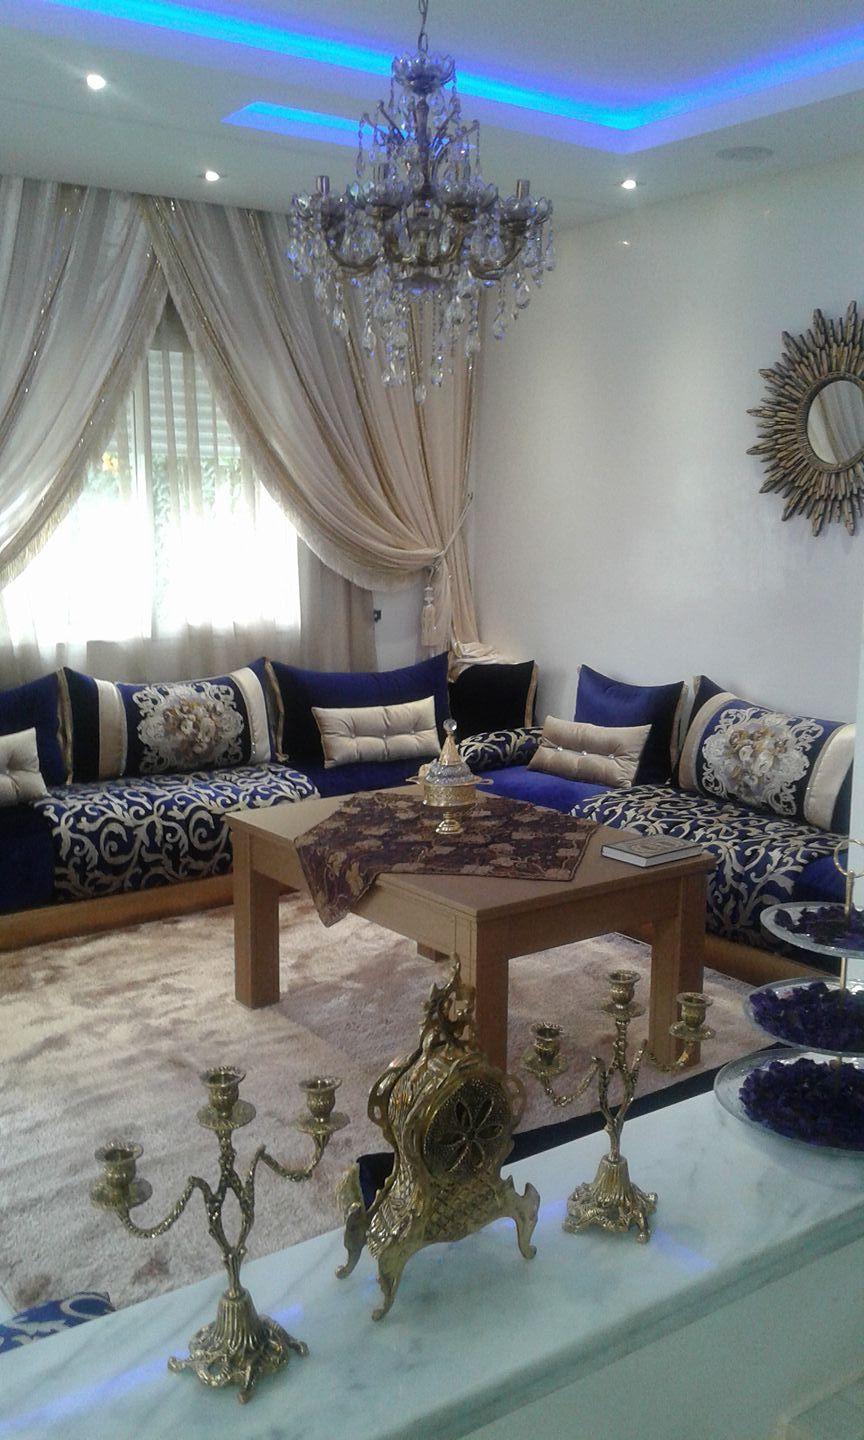 Pin by naima saidi on صالون مغربي  Moroccan living room, Living